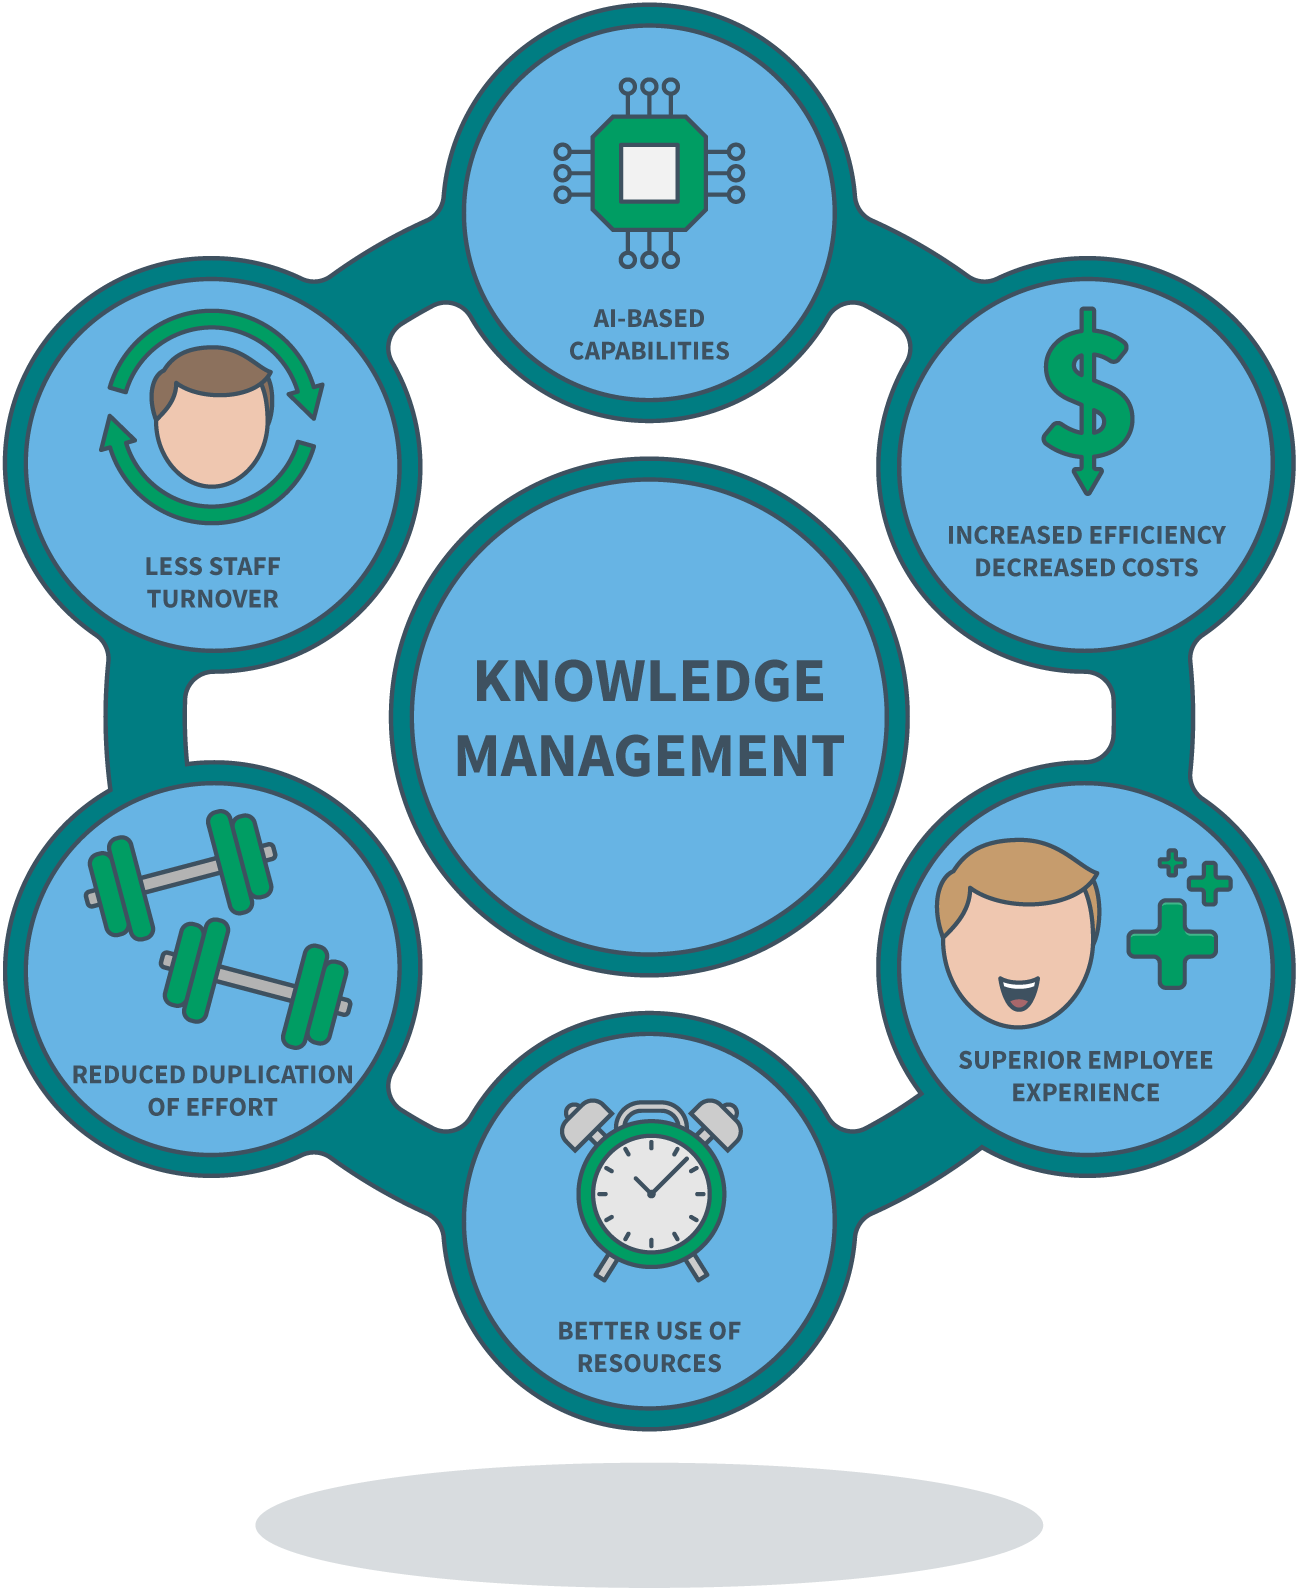 The Benefits of Knowledge Management Diagram